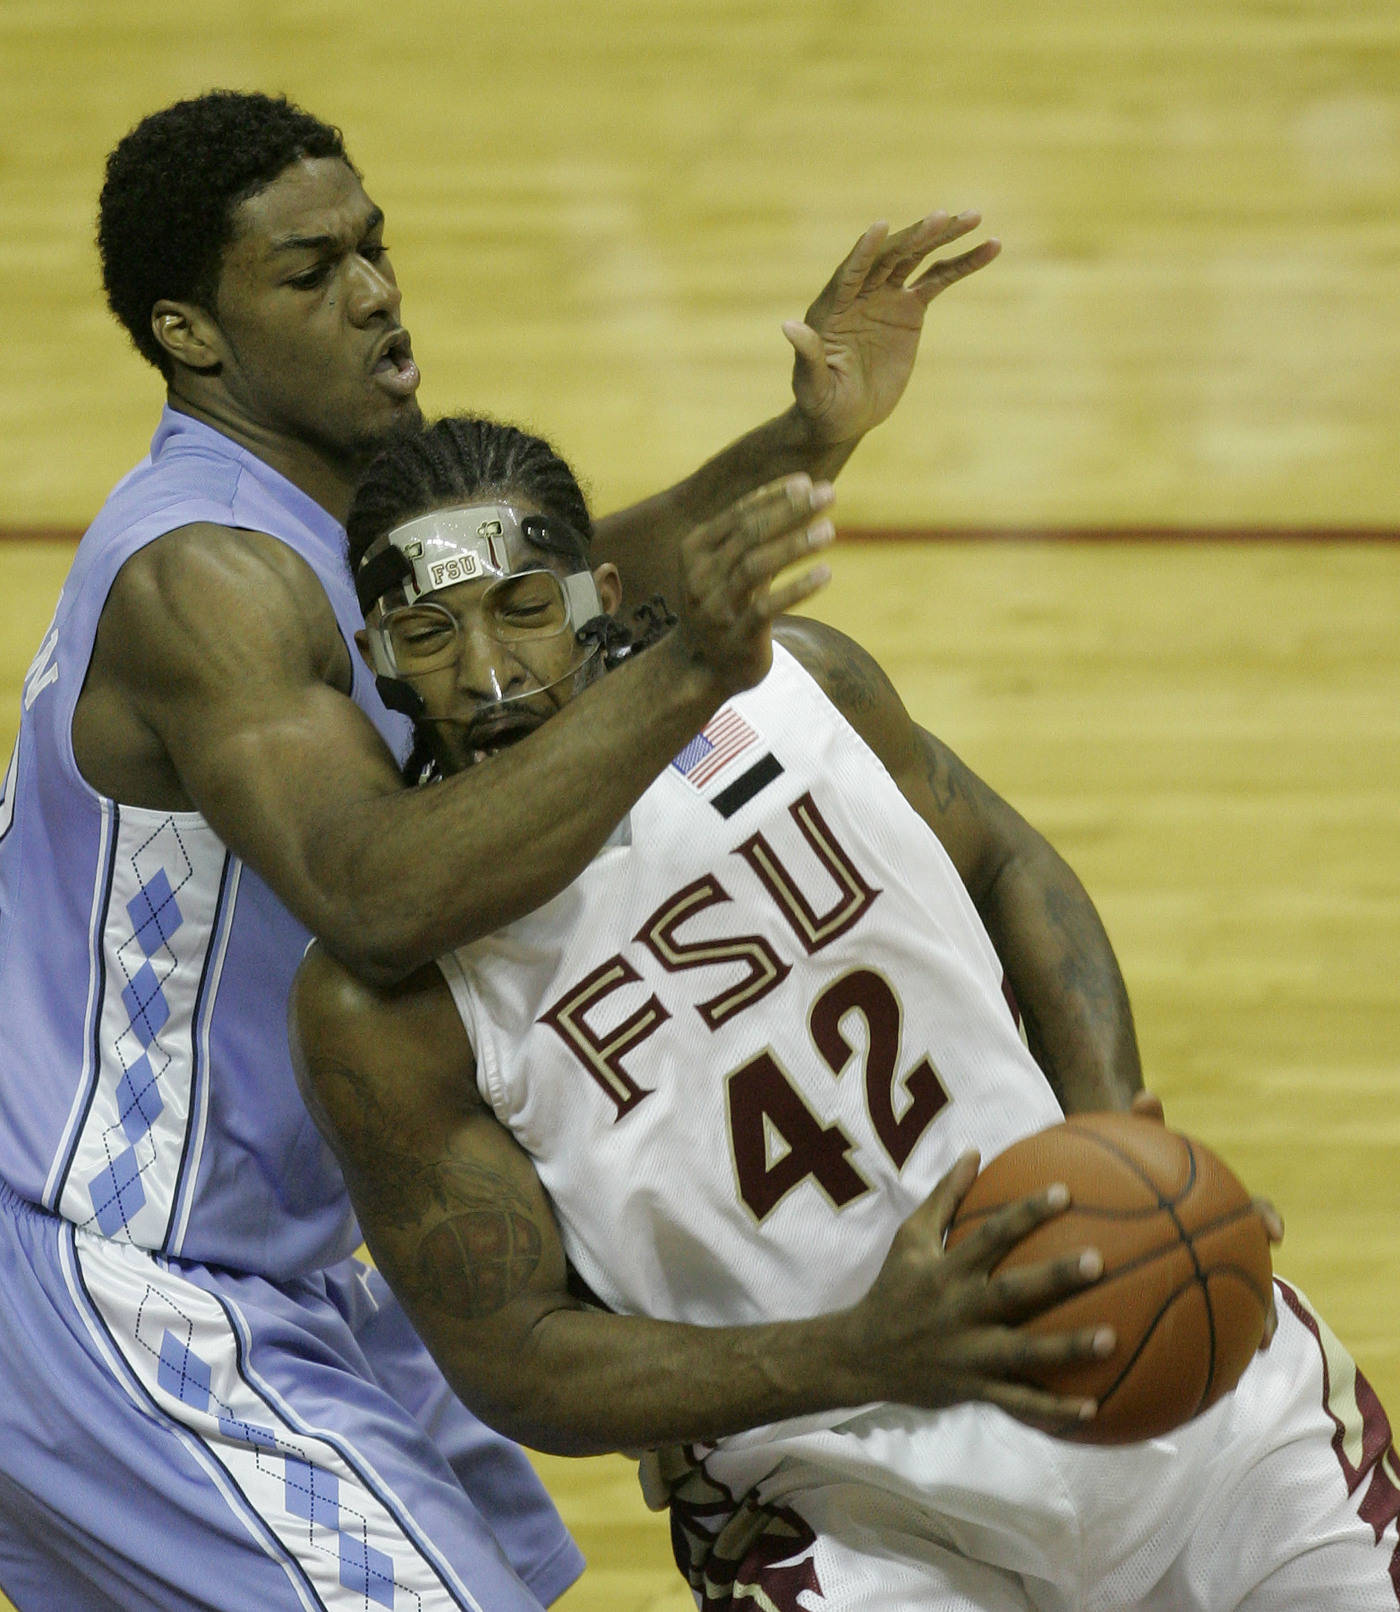 Florida State's Ryan Reid, right, is fouled by North Carolina's Alex Stephenson during the first half (AP Photo)